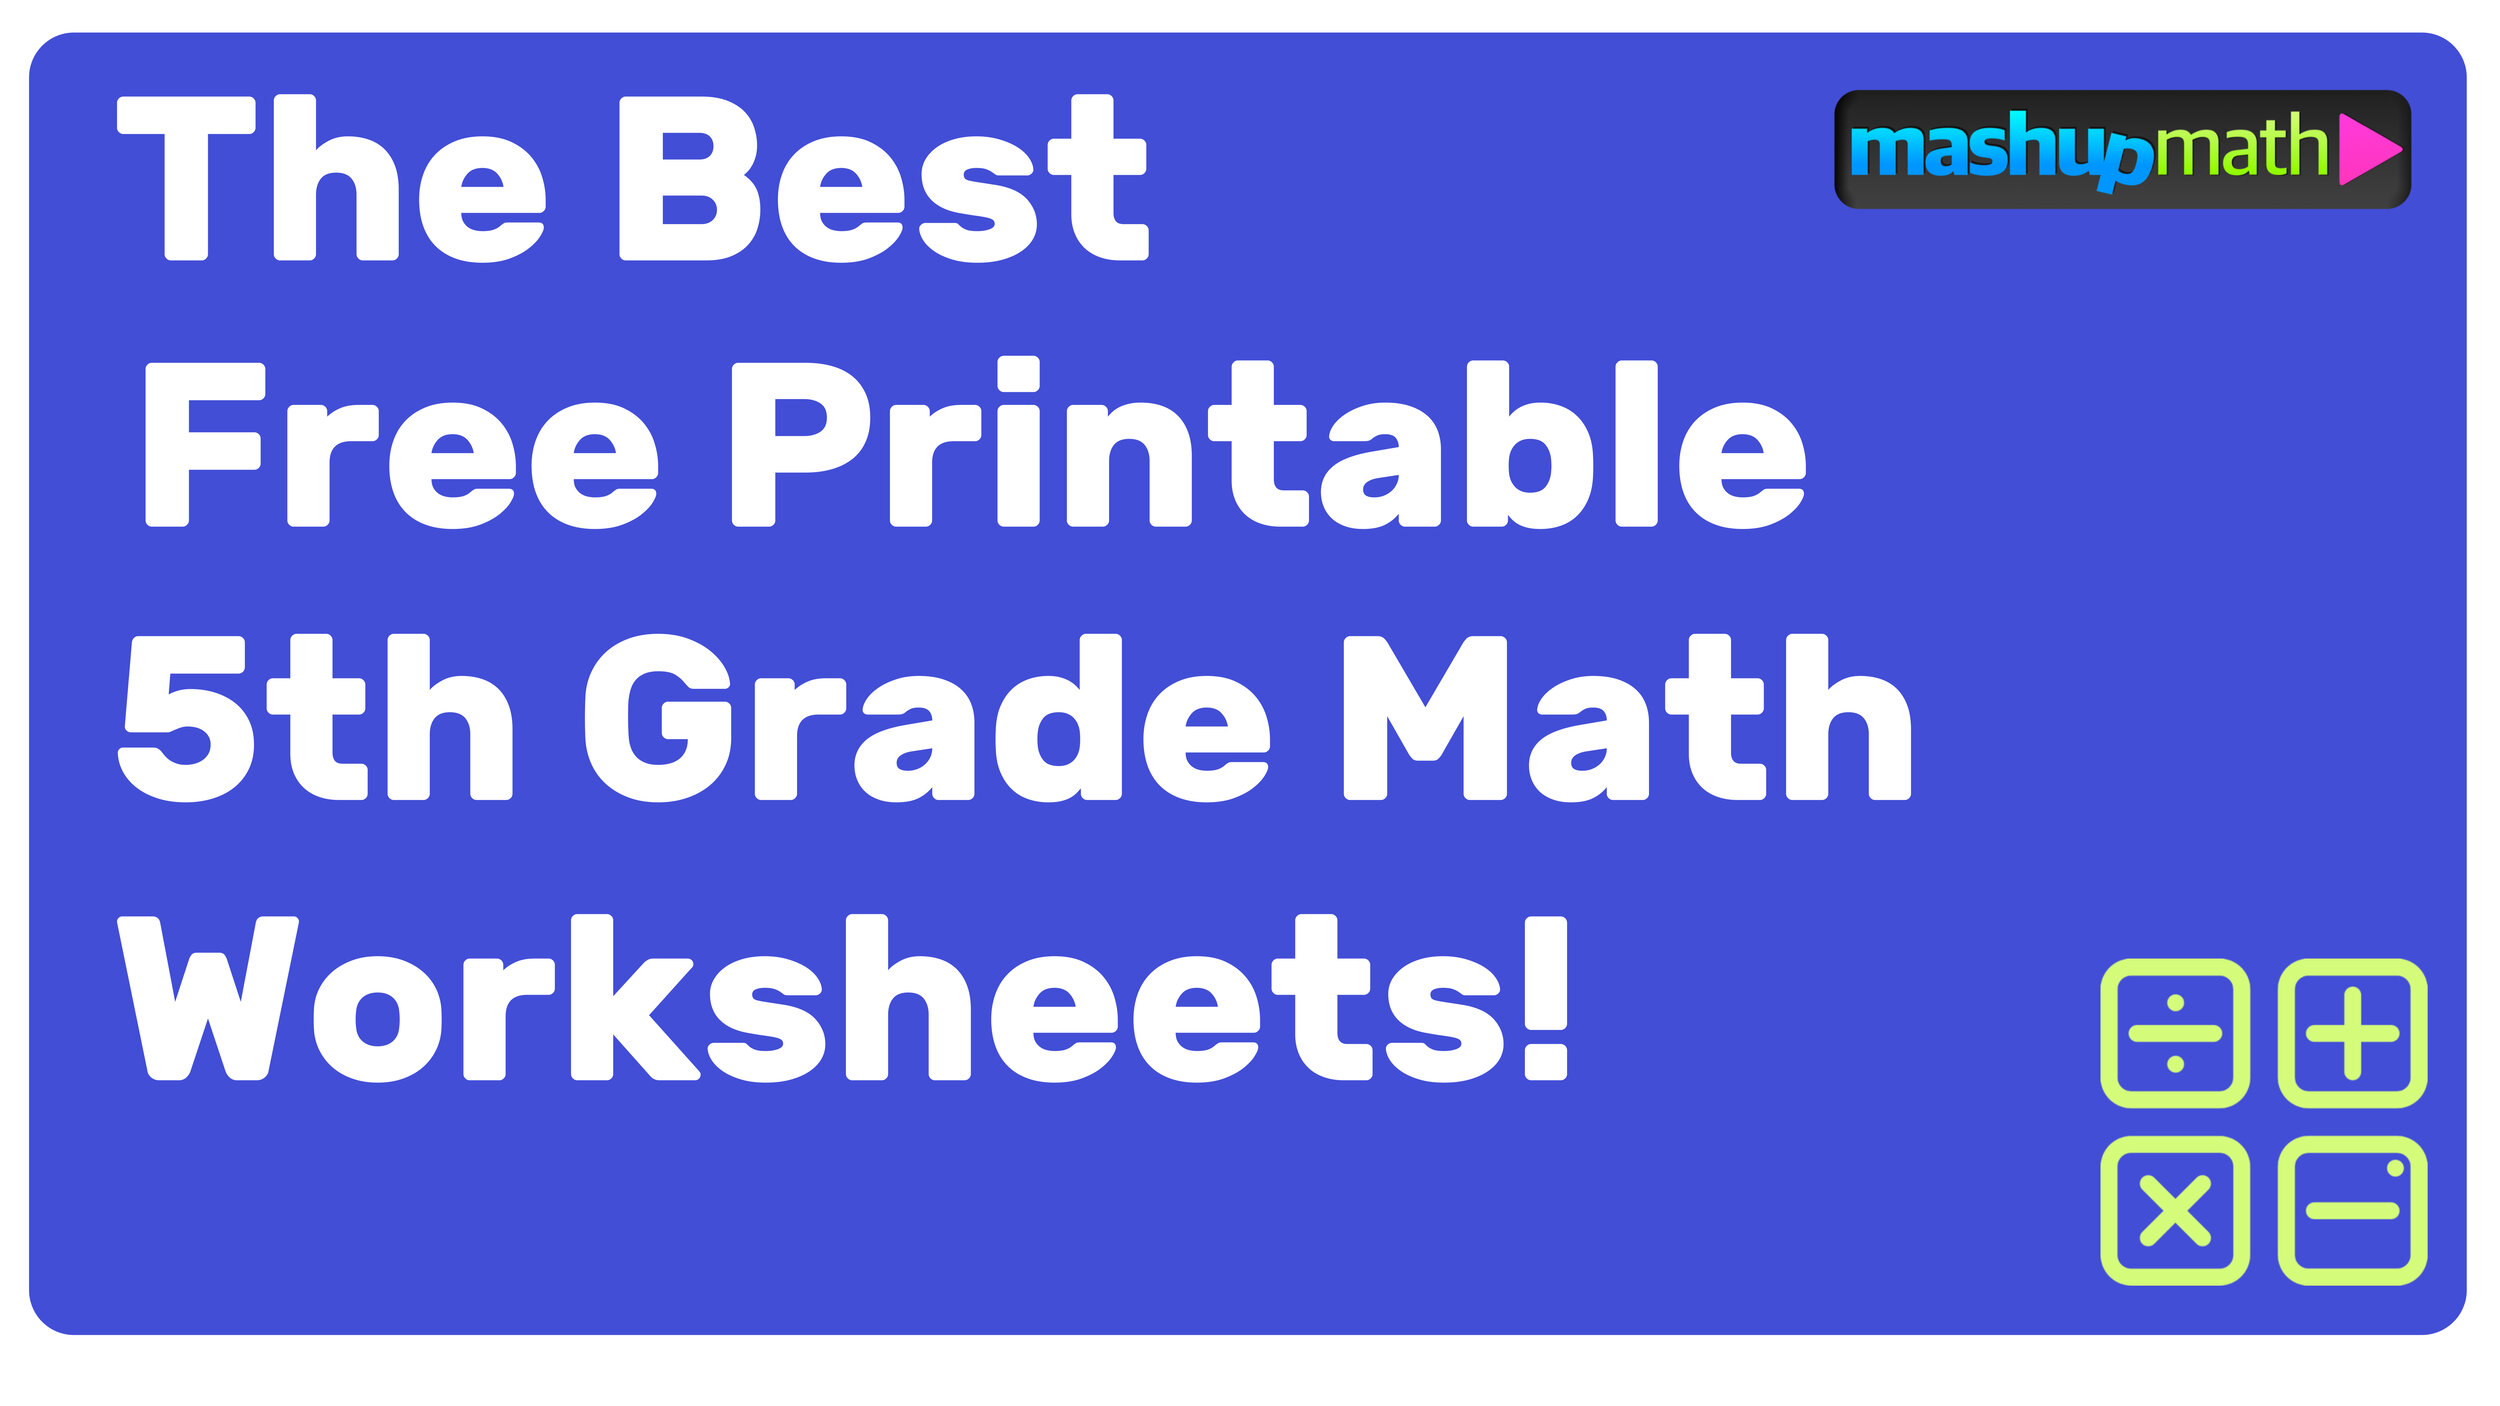 small resolution of Free Printable 5th Grade Math Worksheets (with Answers!) — Mashup Math